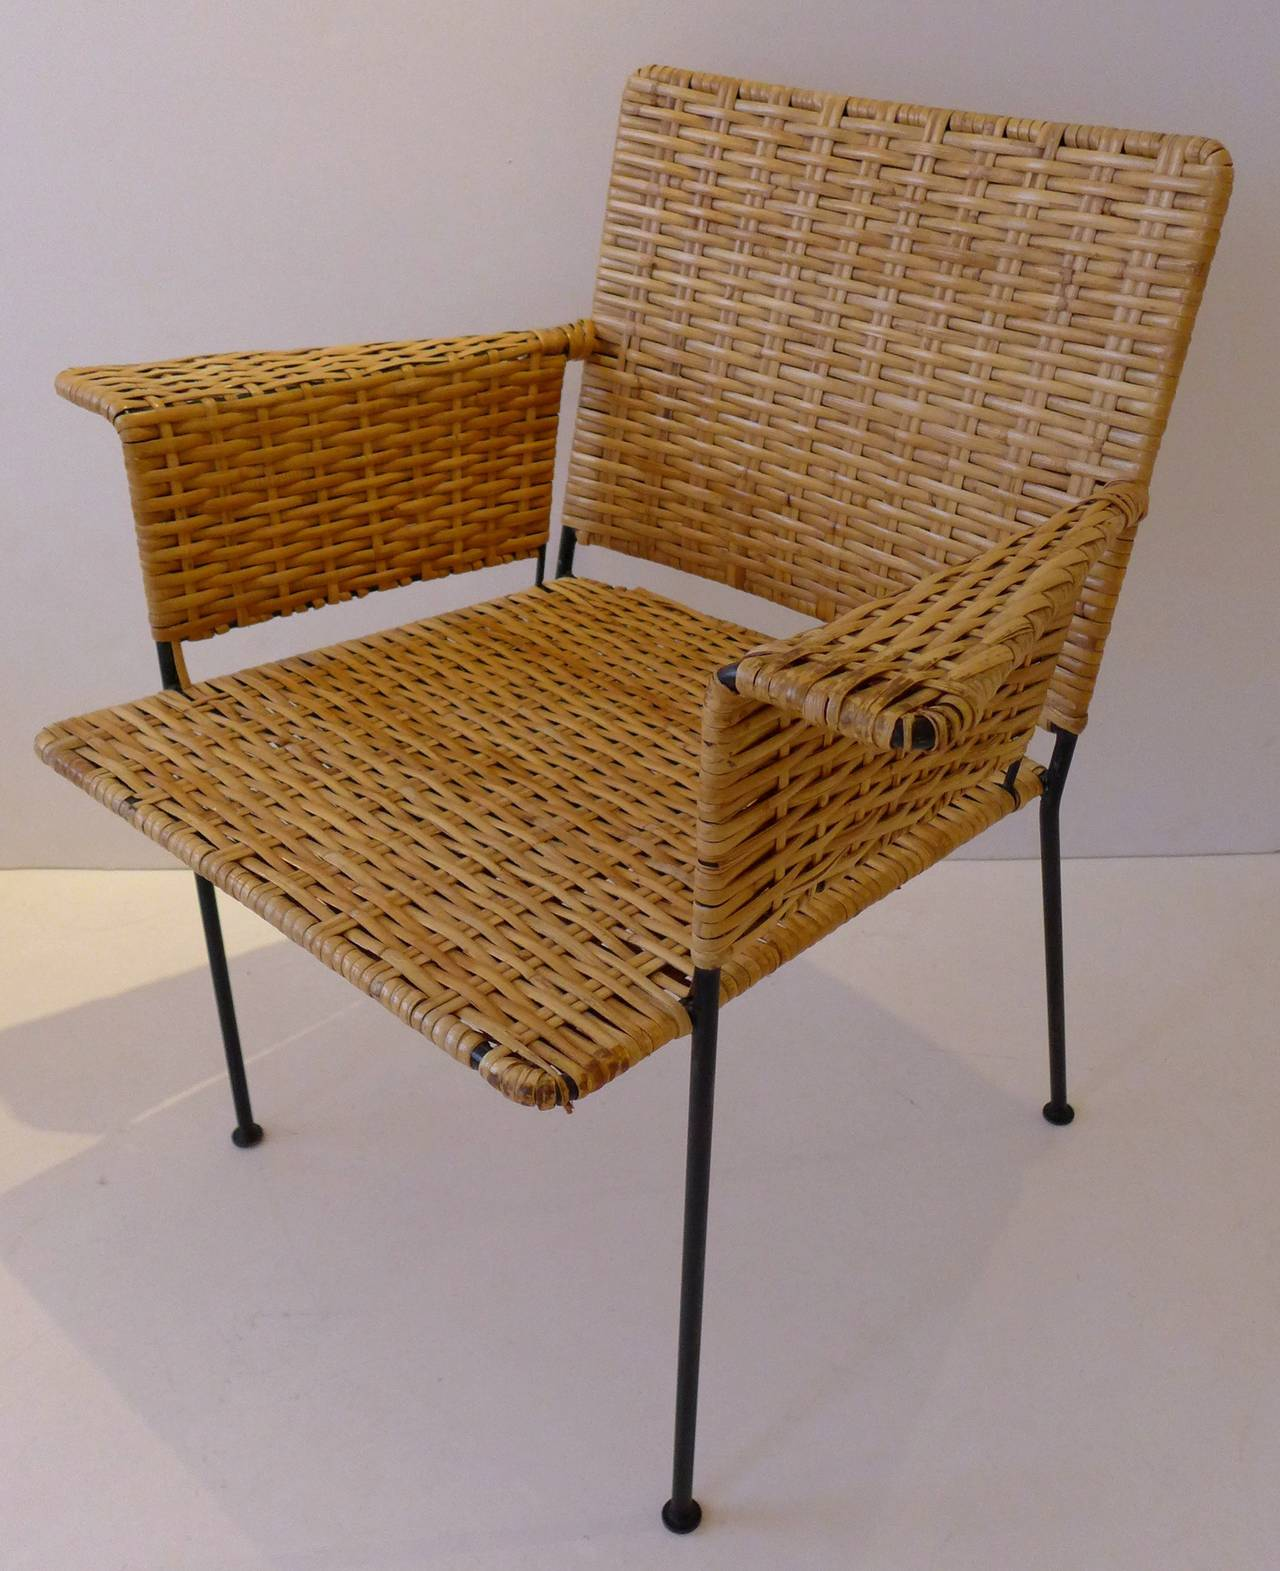 Indoor And Outdoor Chair Of Wrought Iron And Woven Rattan By Designers  Hendrik Van Keppel And